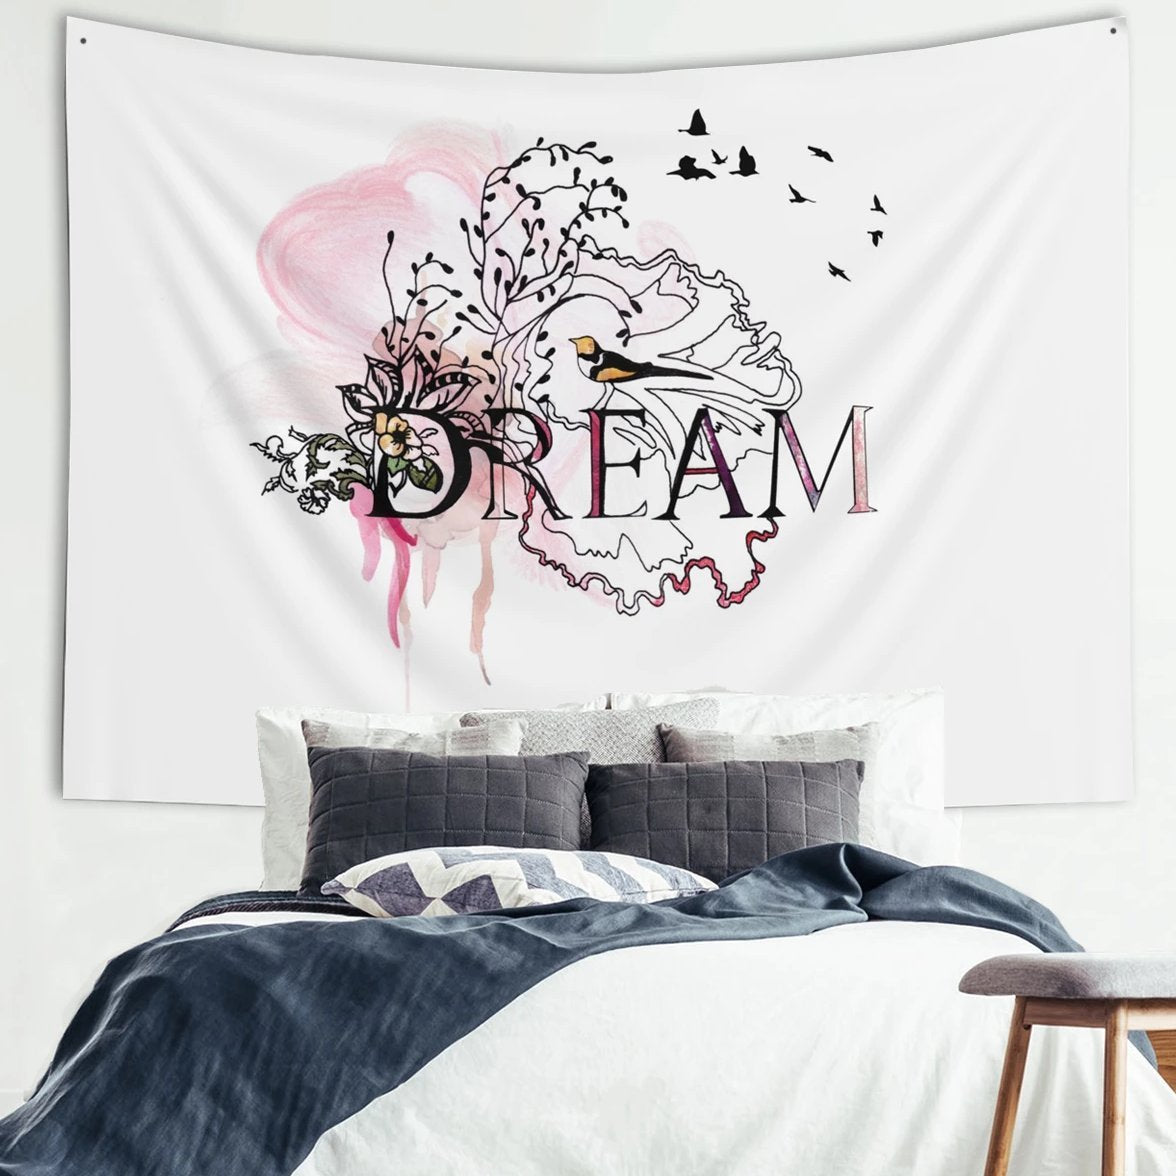 Bedroom tapestry, Dream wall tapestry - Liz Kapiloto Art & Design